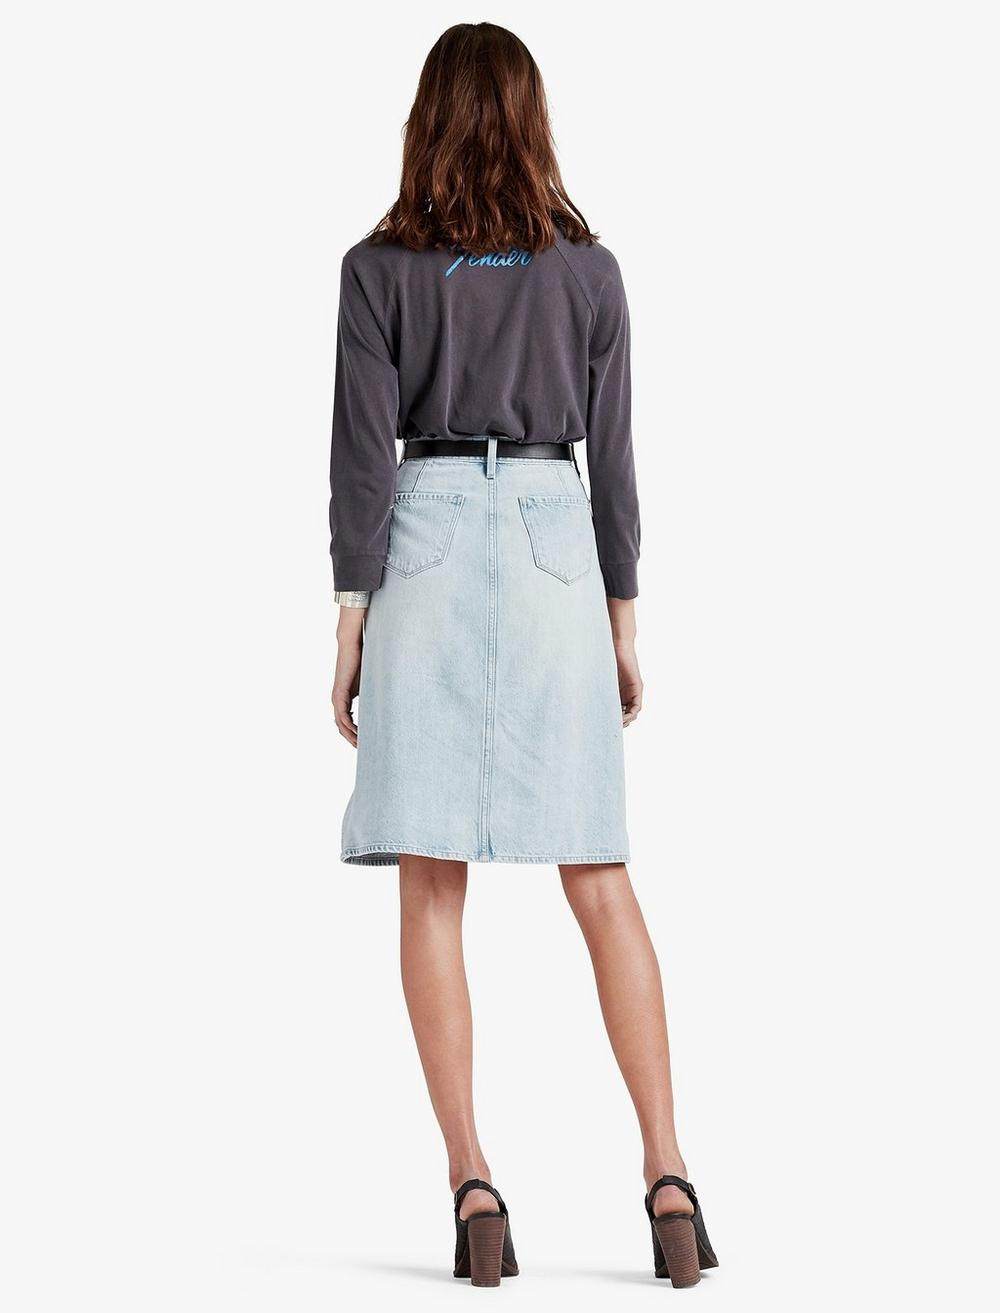 HIGH RISE BUTTON FRONT SKIRT, image 3